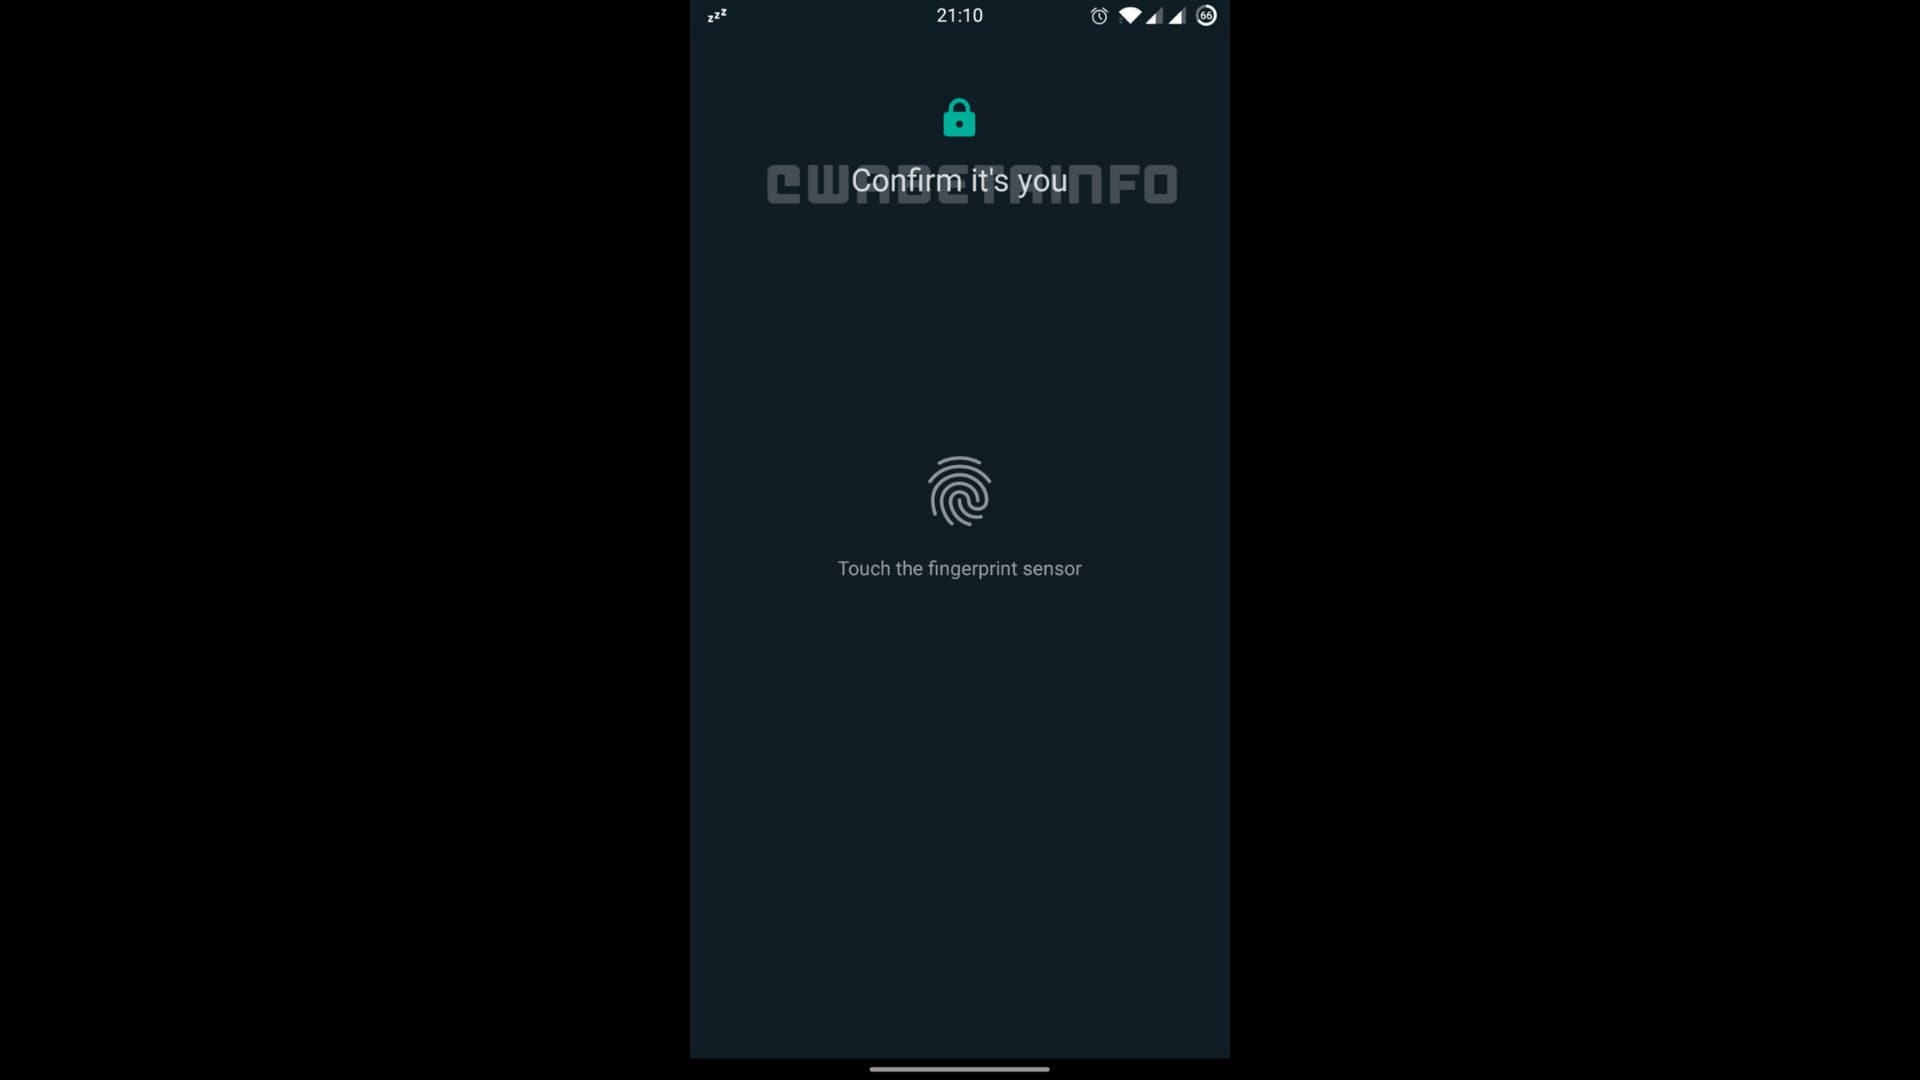 WhatsApp Web Will Soon Get Fingerprint Authentication Suggests Latest Beta